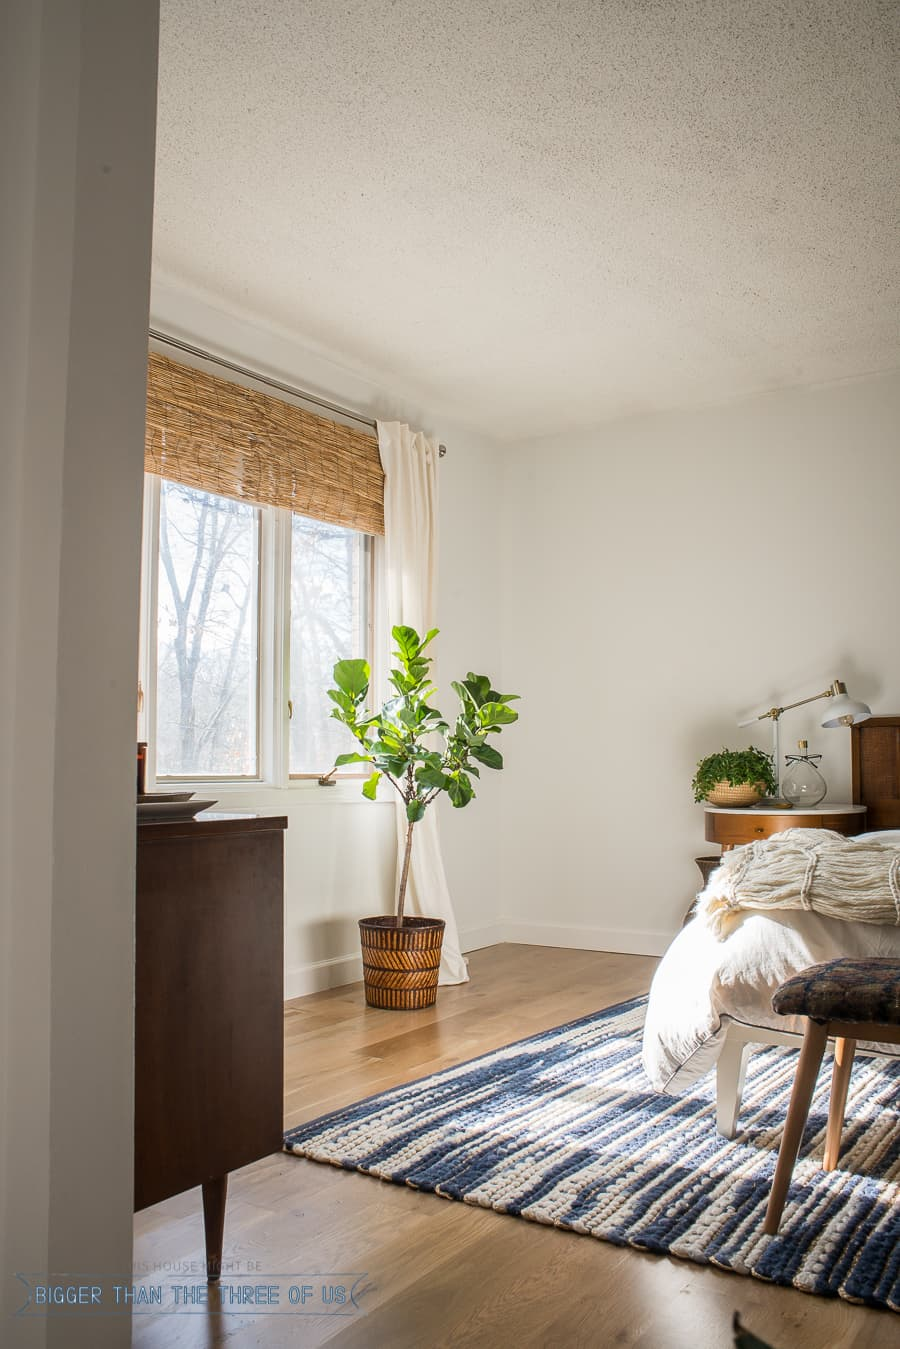 Mid-Century Bedroom Reveal - Bigger Than the Three of Us